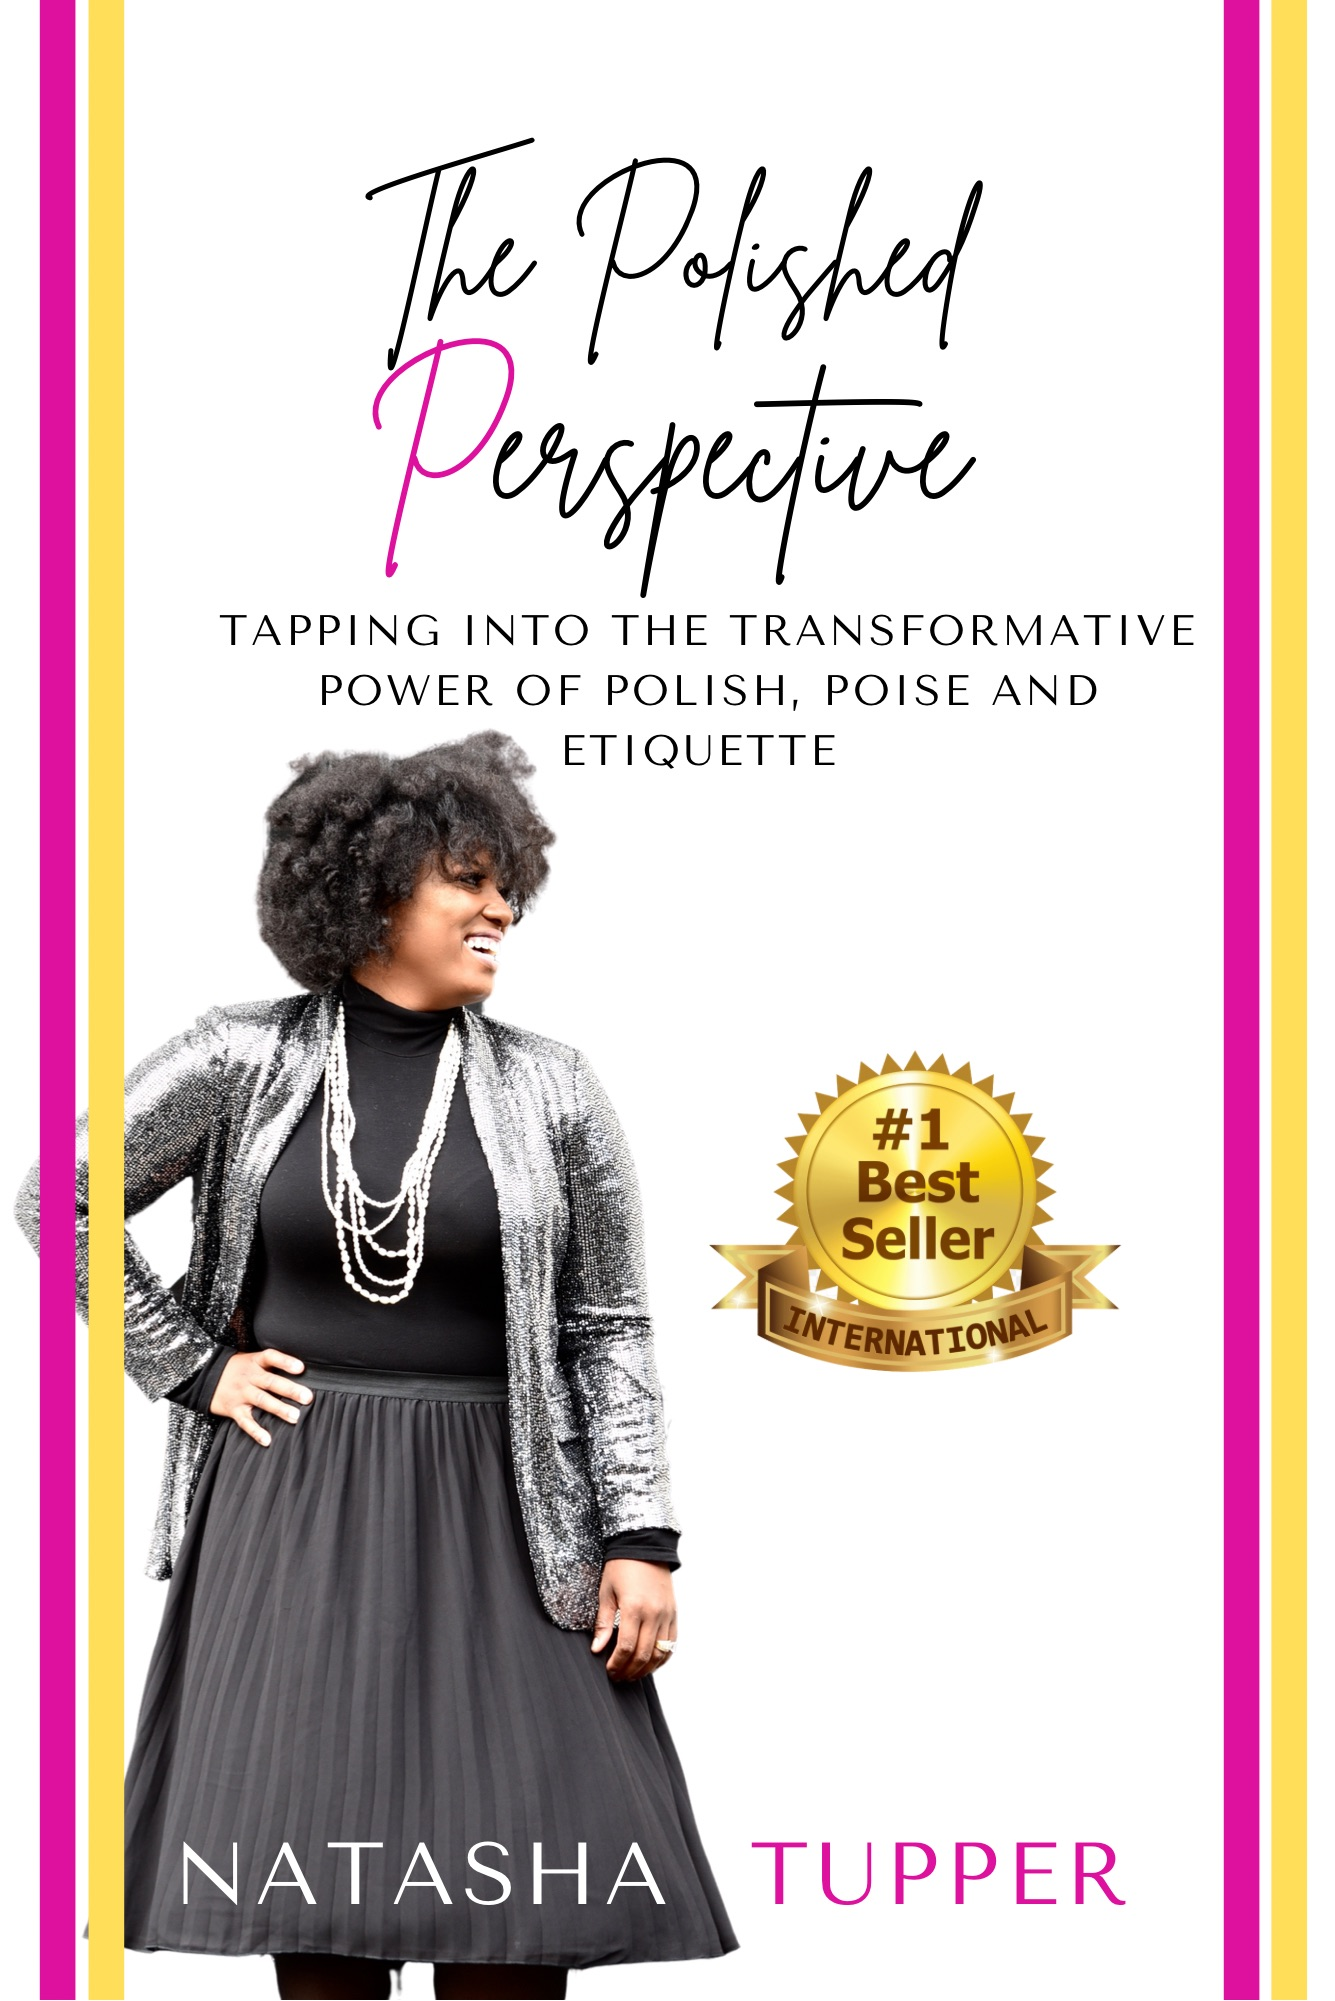 Amazon Acknowledges Natasha Tupper, Founder of The Polished Institute as a Bestselling #1 Author on Amazon